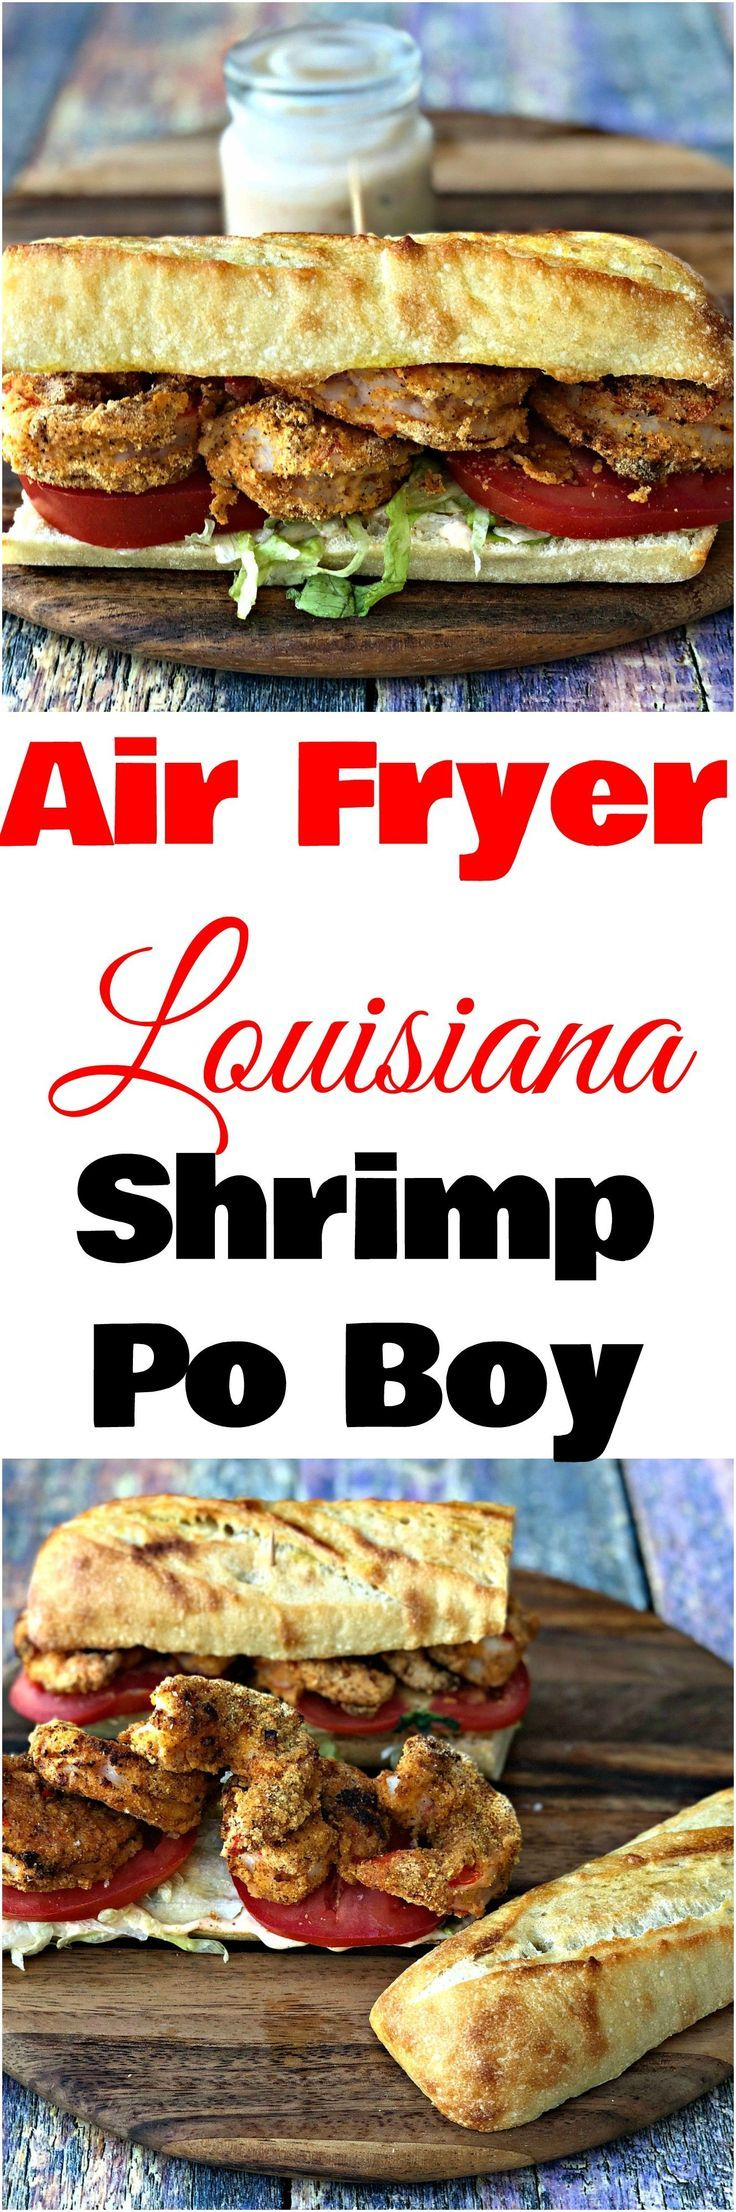 Air Fryer Fried Louisiana Shrimp Po Boy with Remoulade Sauce is a quick and easy low-fat recipe with air fryer shrimp and New Orleans Creole seasoning. #AirFryer #AirFryerRecipes #Shrimp #ShrimpRecipes #LouisianaFood #CreoleFood